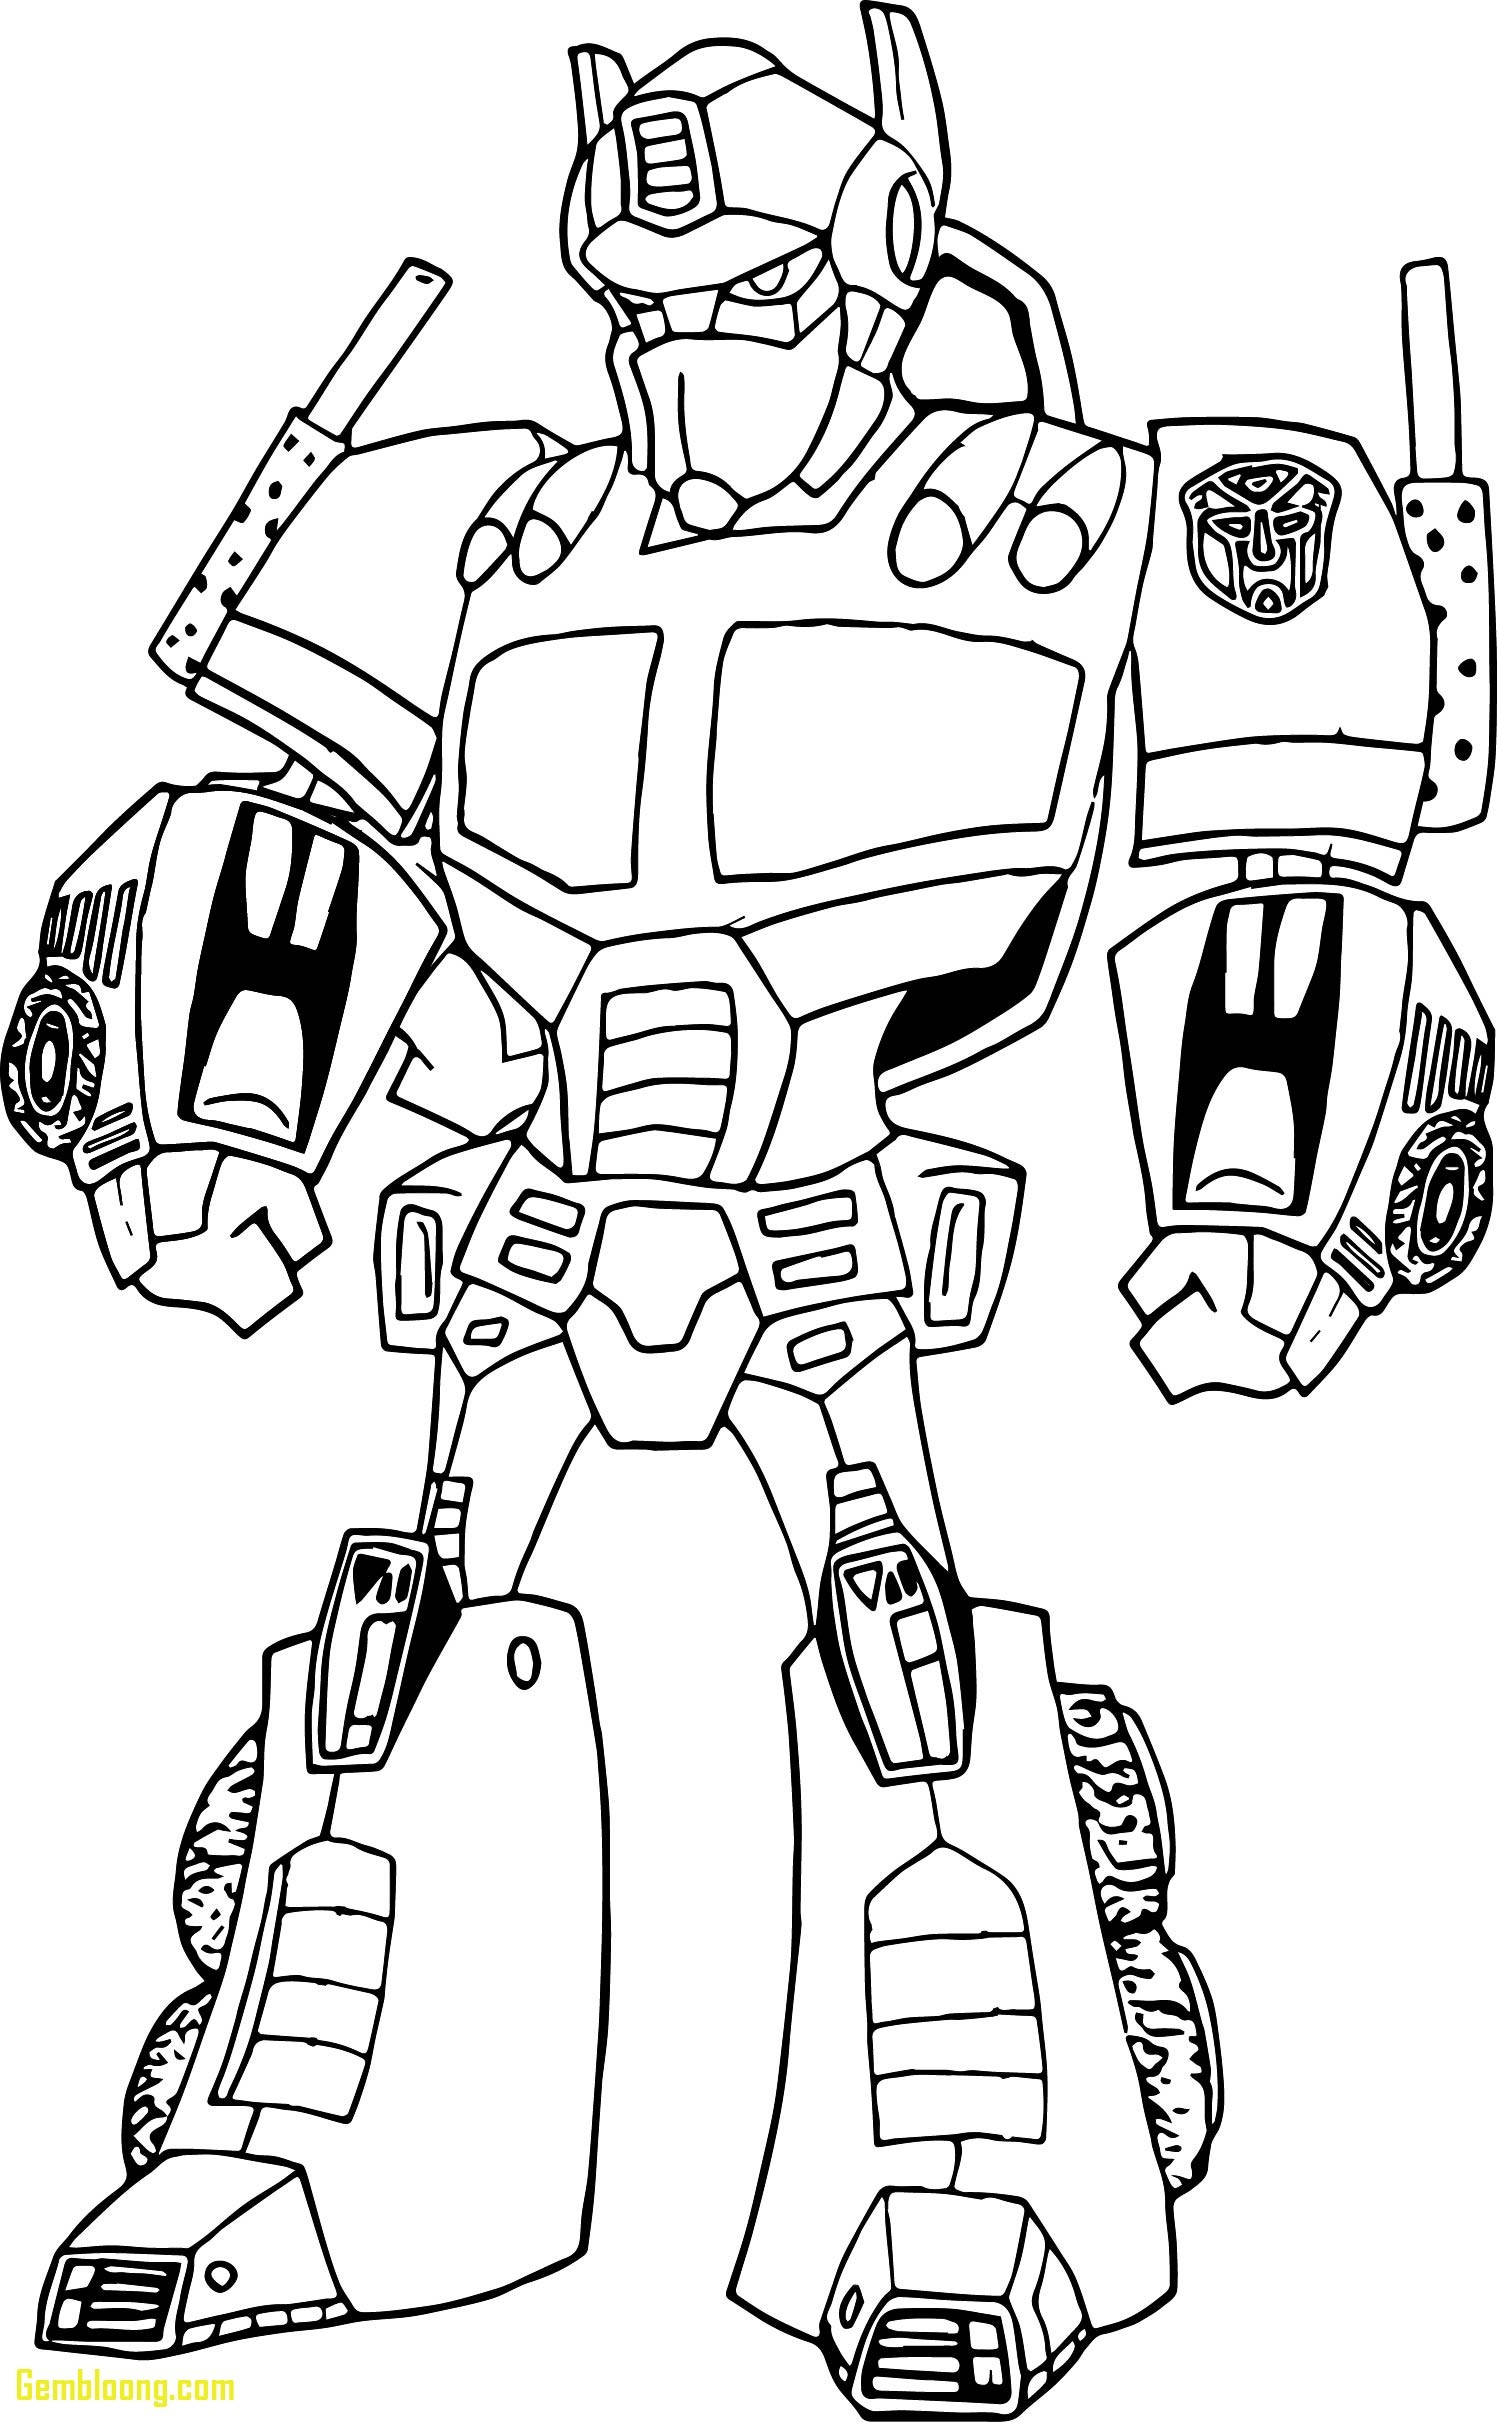 robot pictures to print robots coloring pages download and print robots coloring to pictures print robot 1 1